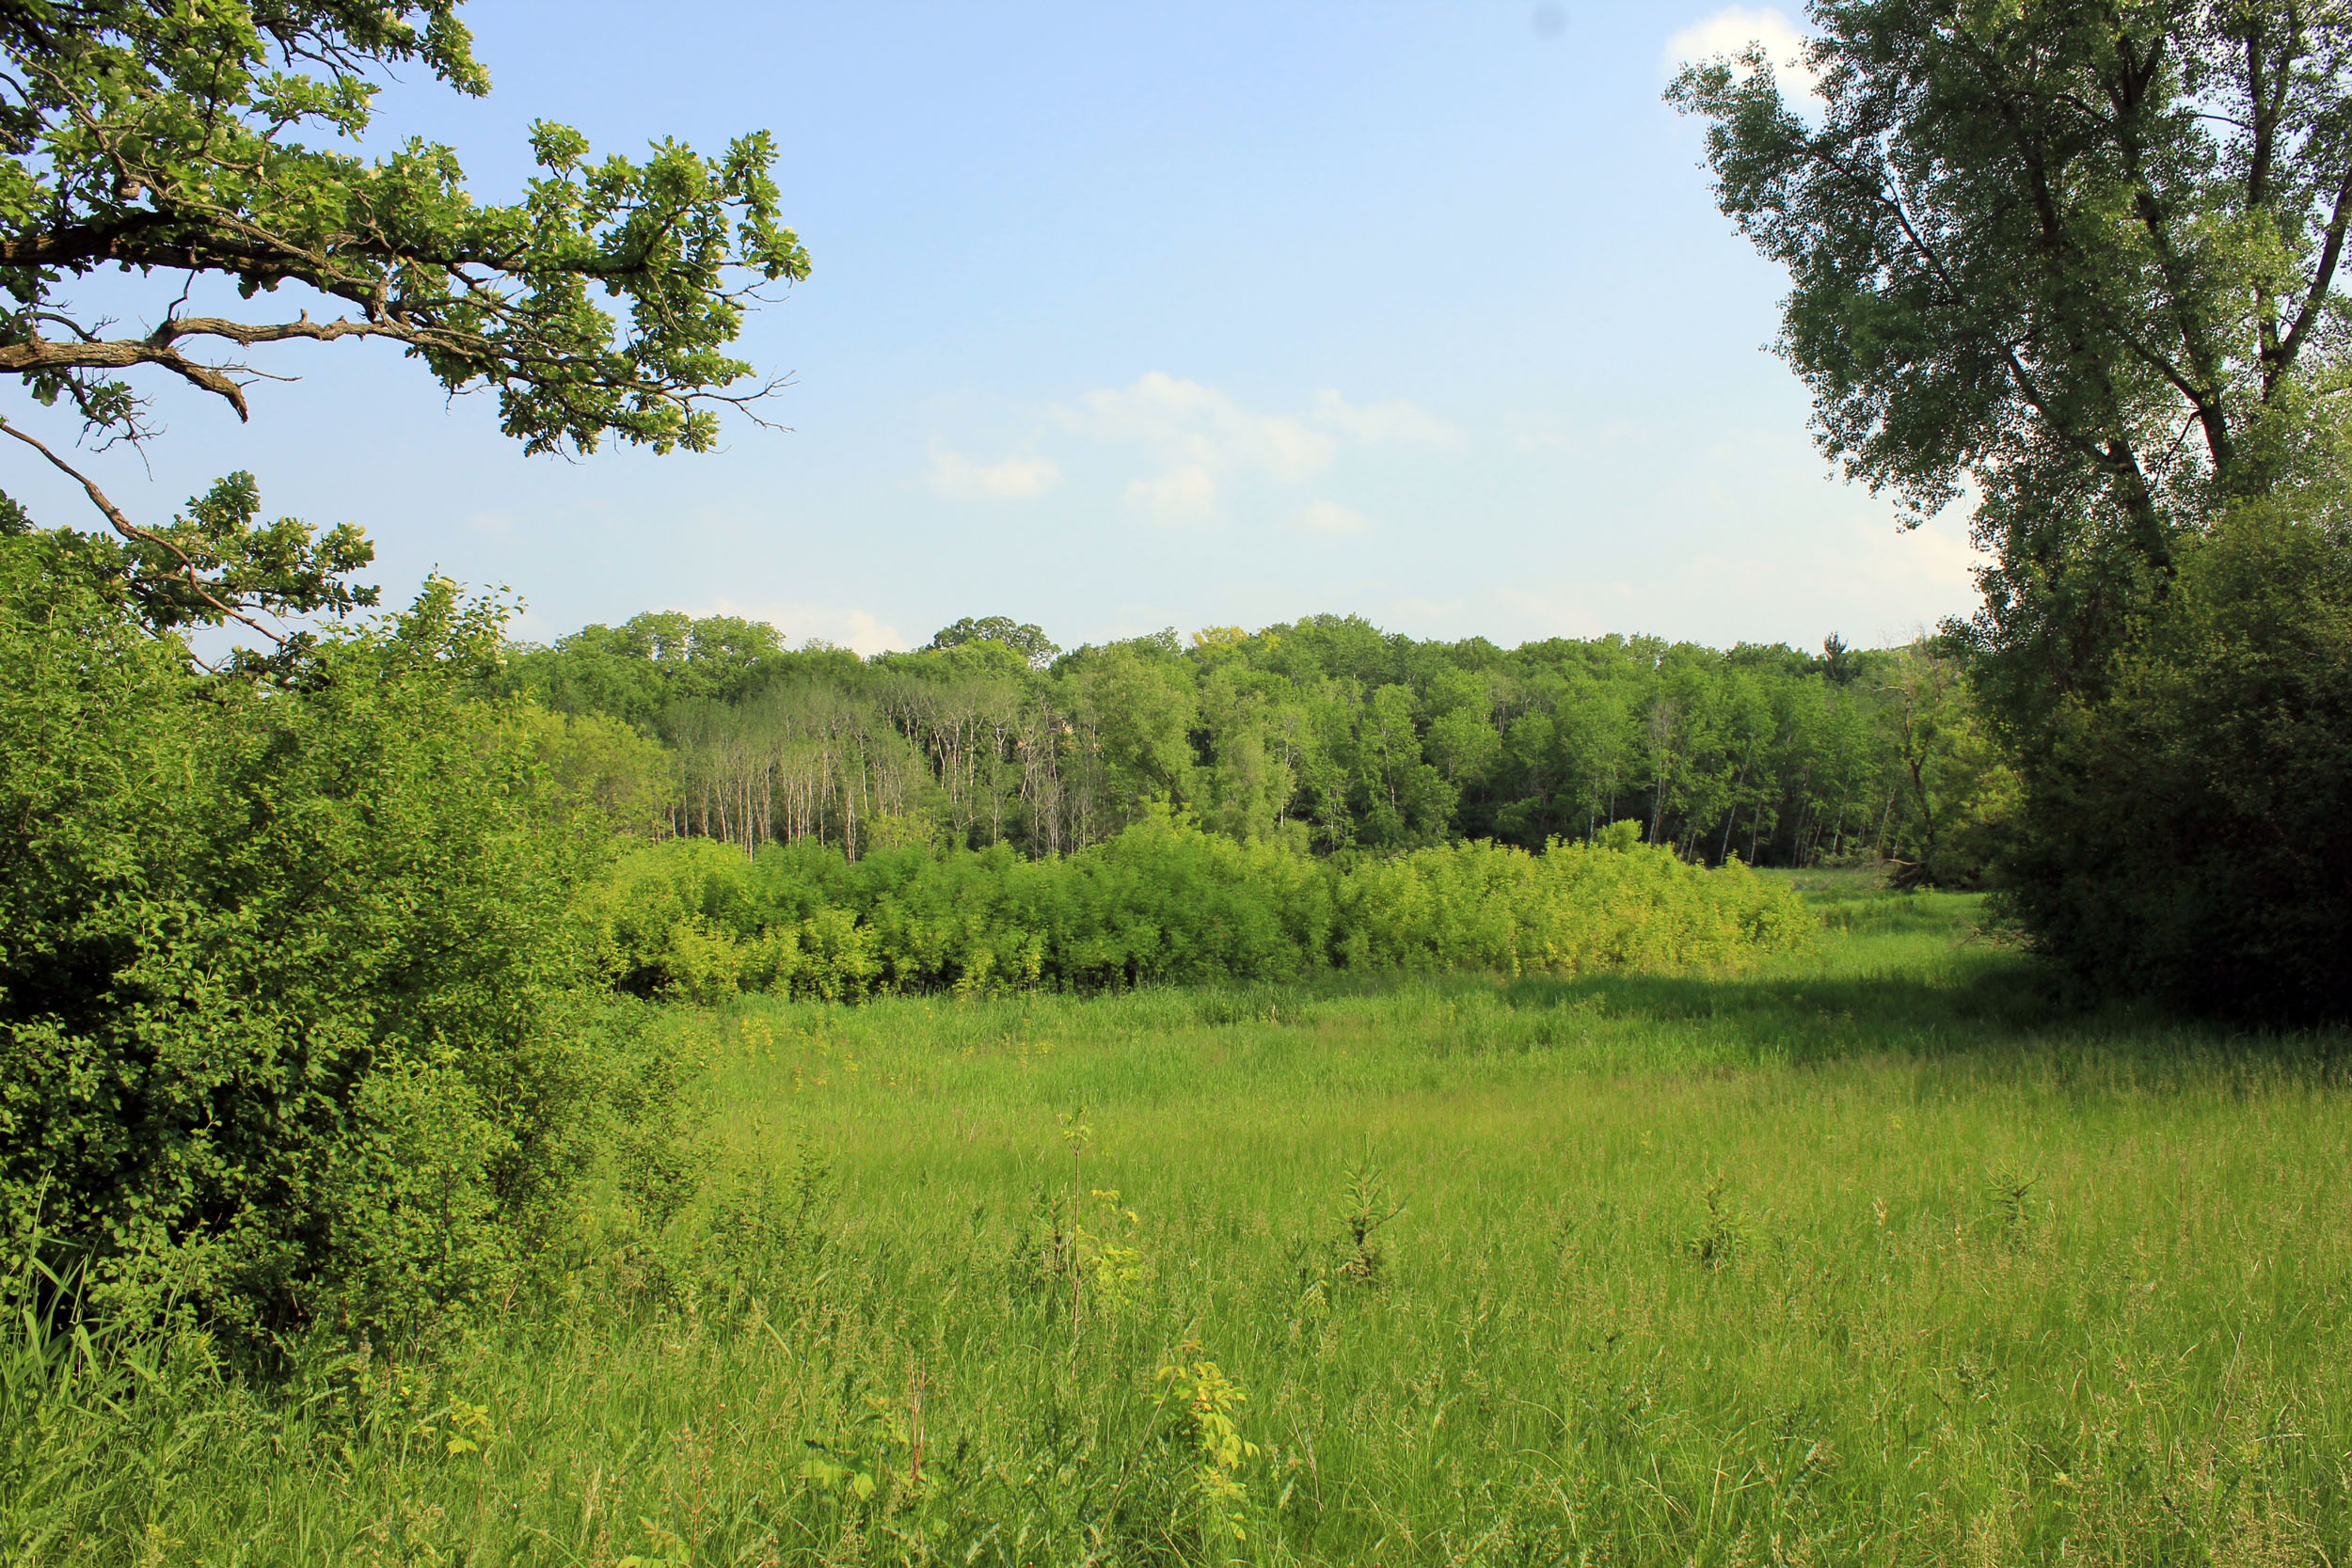 Forest, meadow, and clearing at Lapham Peak State Park, Wisconsin.